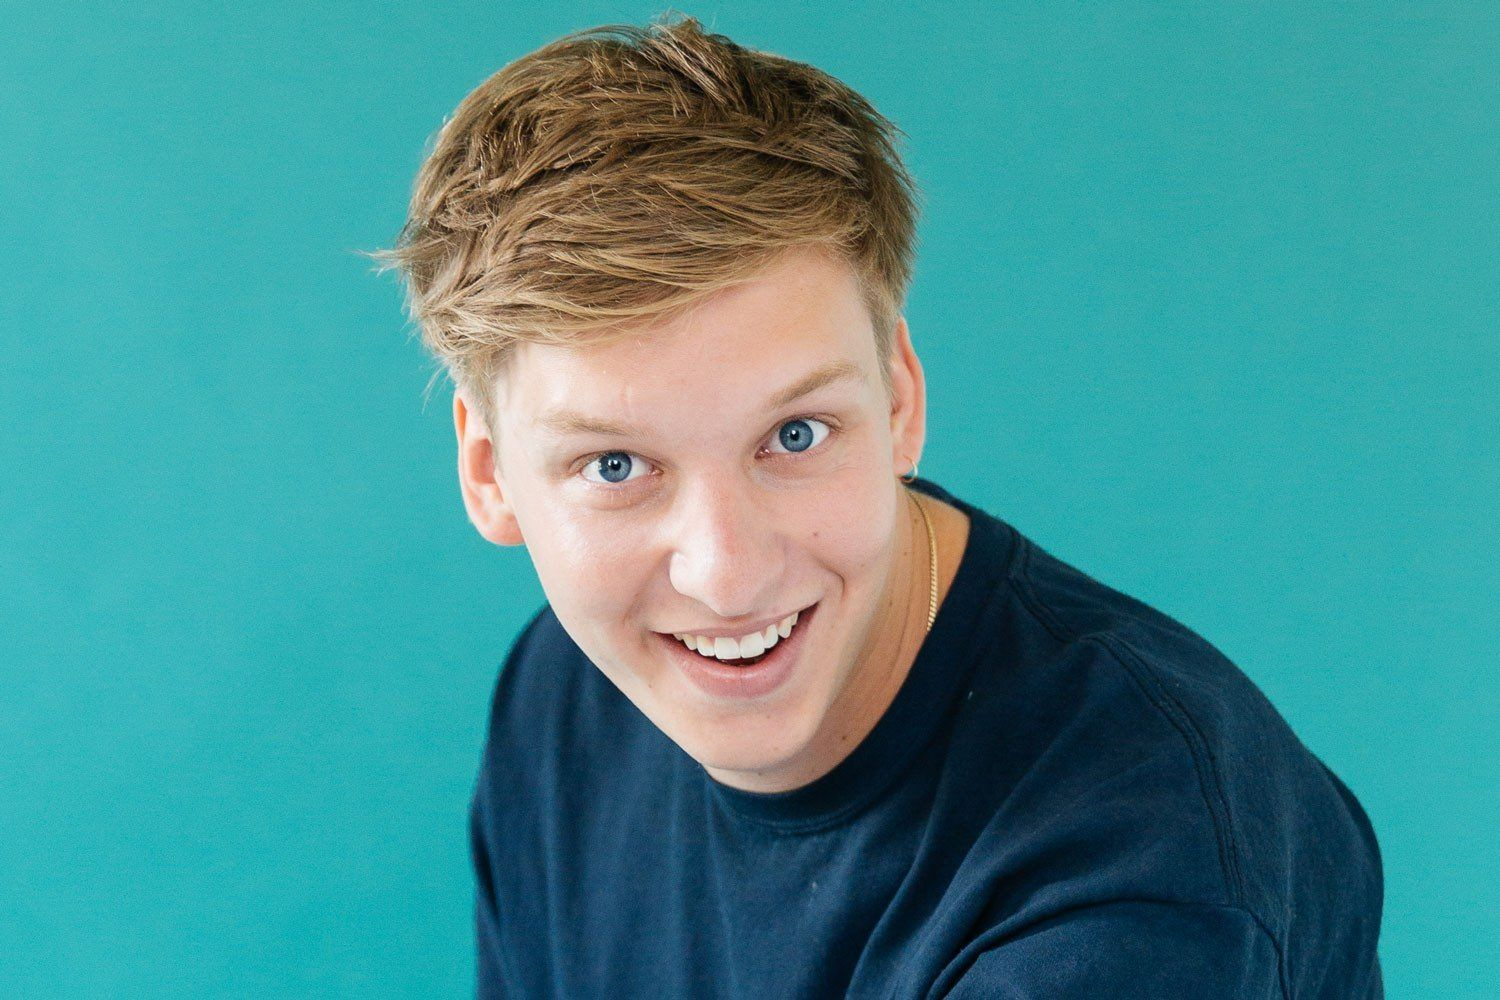 George-Ezra-Phil-Smithies-Dork-September-2017-ORIGINAL-SHOT-NOT-FOR-REUSE-ELSEWHERE-20.jpg